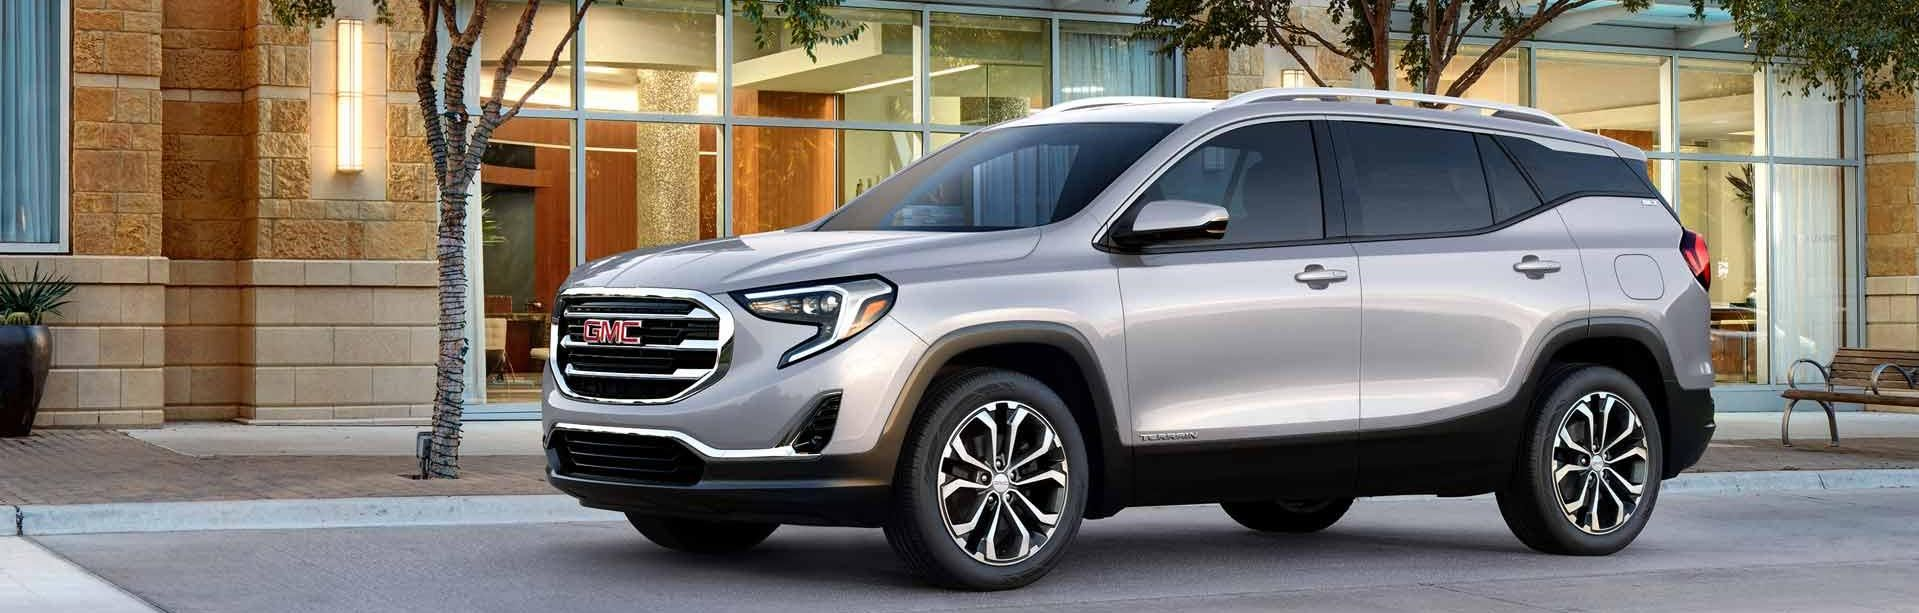 2019 GMC Terrain Financing near Taylor, MI - Moran Automotive